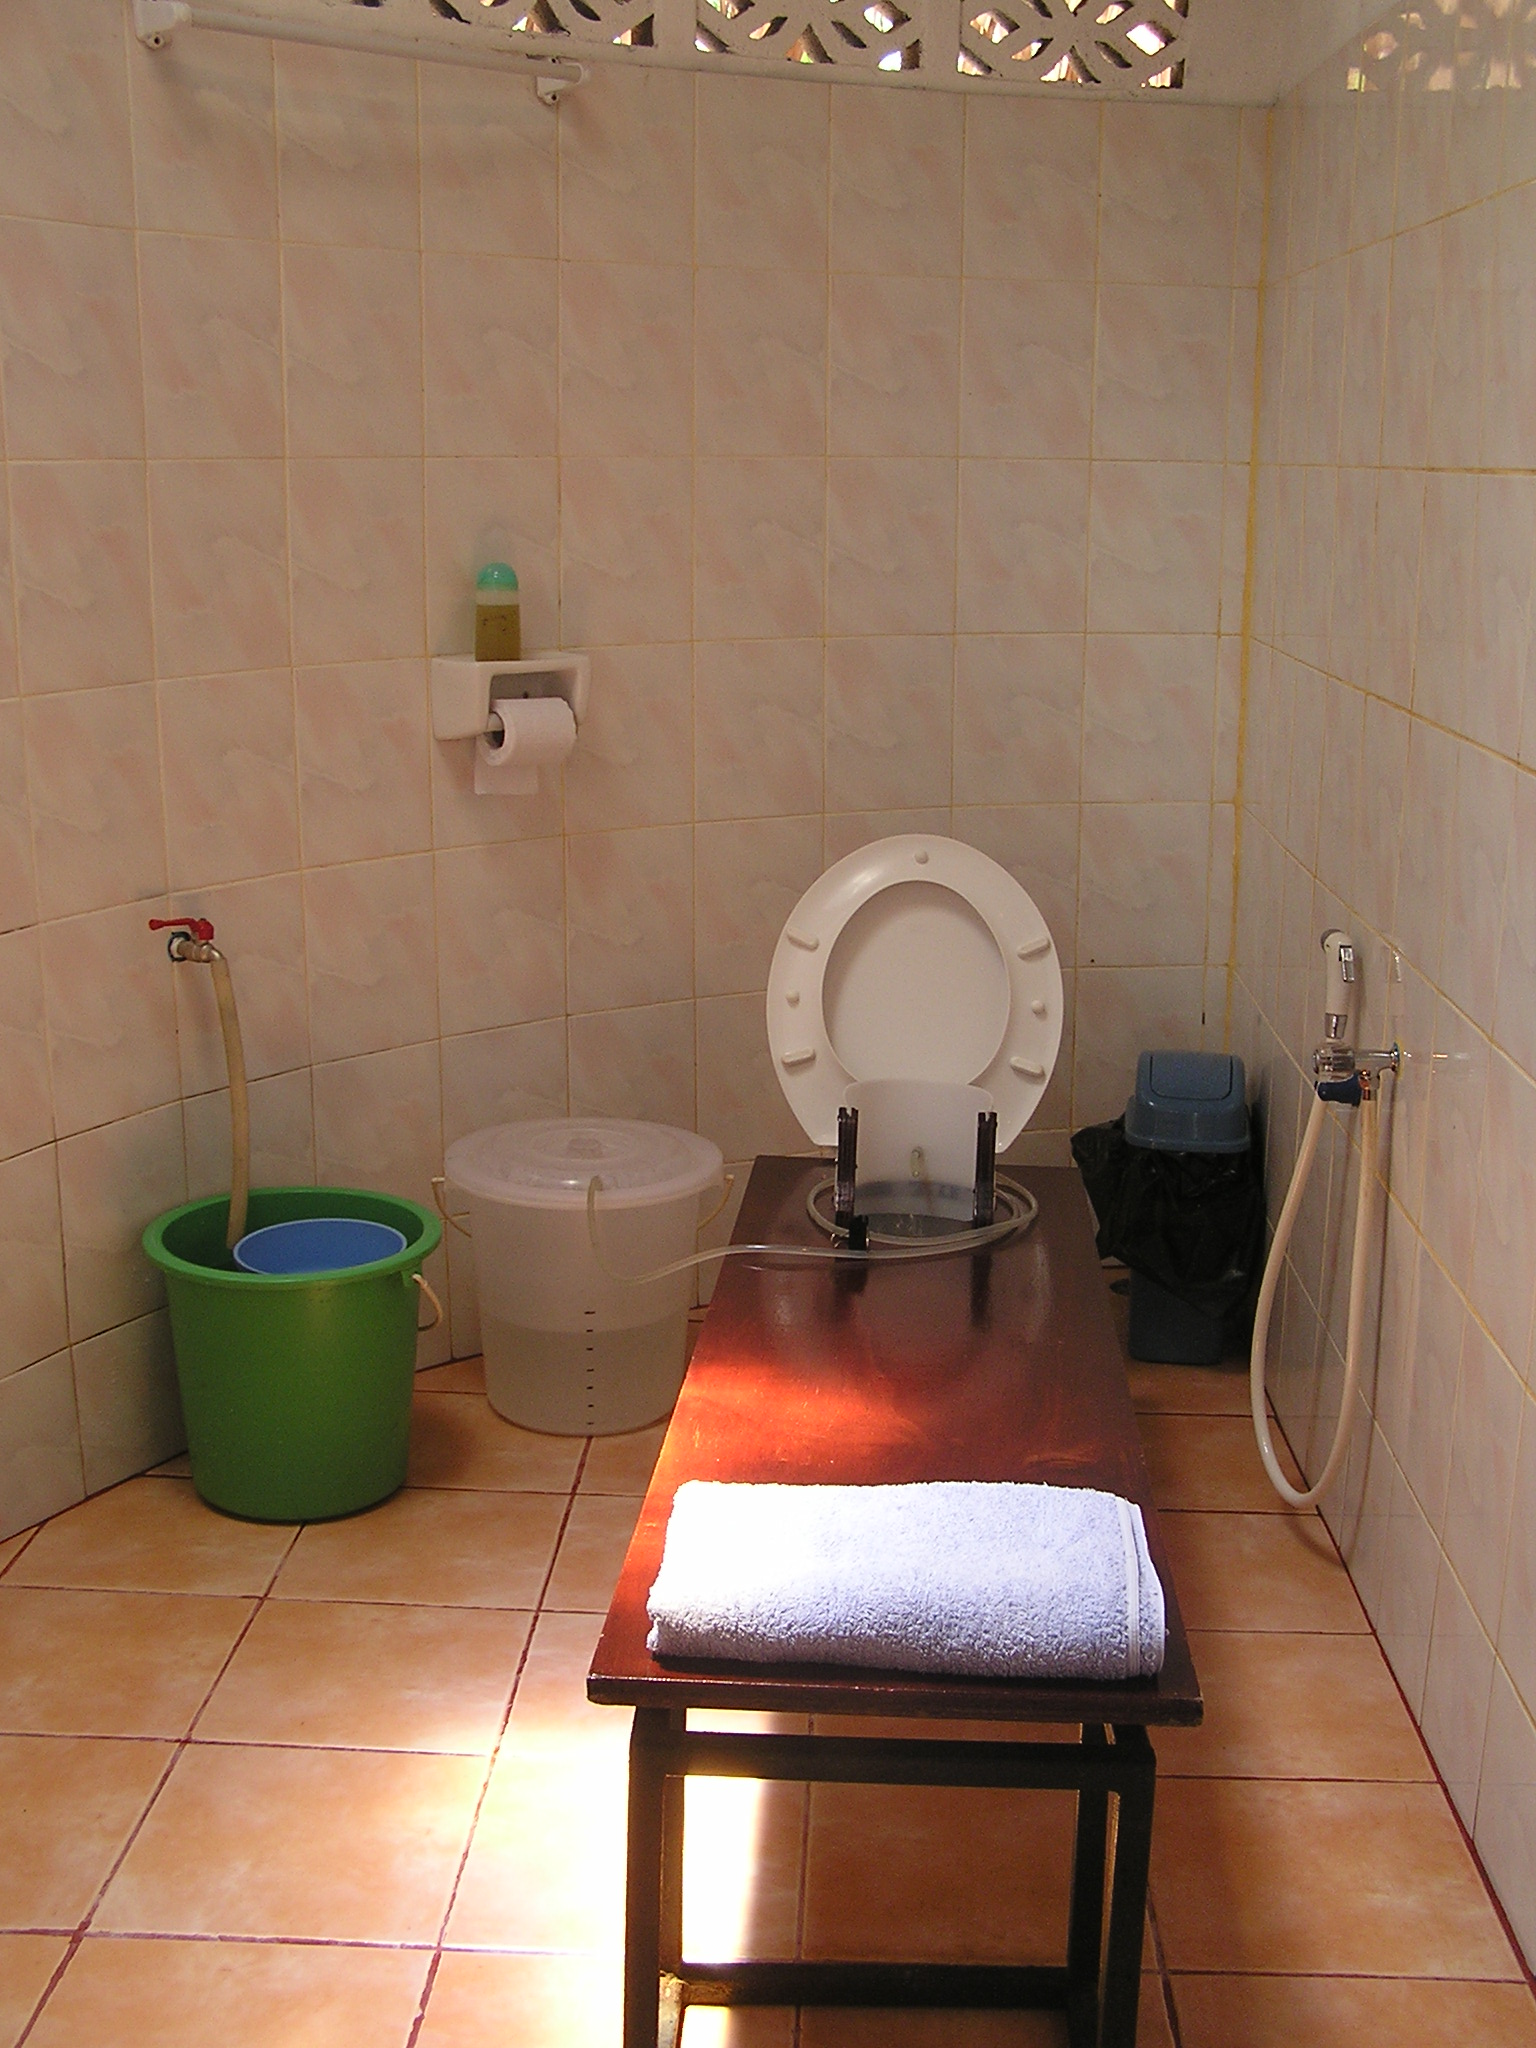 The colonic room